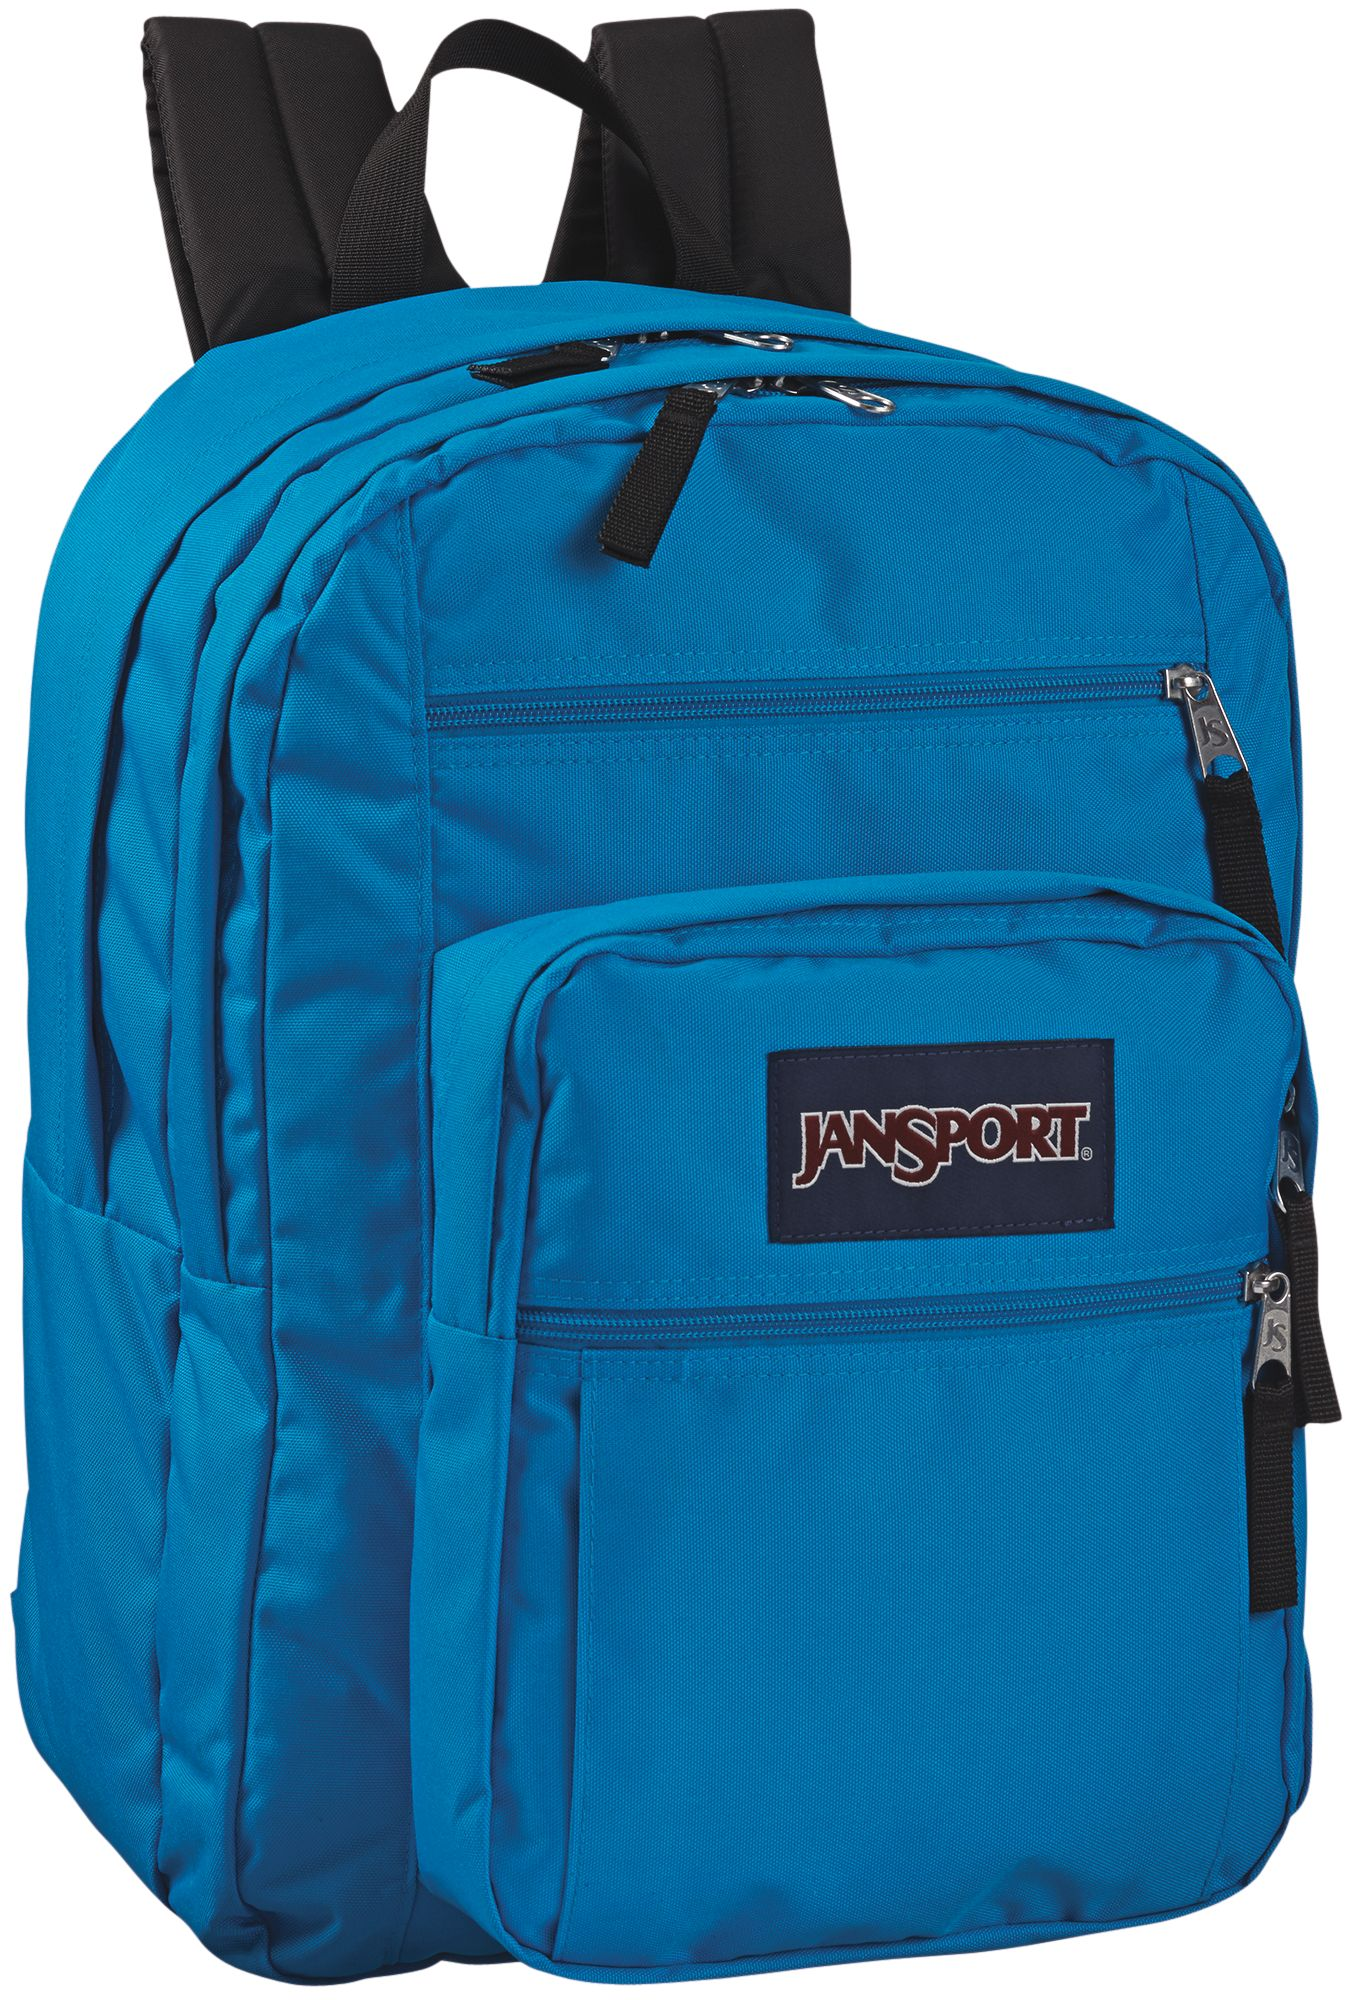 Jansport Helios28 Backpack $ Please enter an email in the form of name@hocalinkz1.ga Please enter an email like name@hocalinkz1.ga